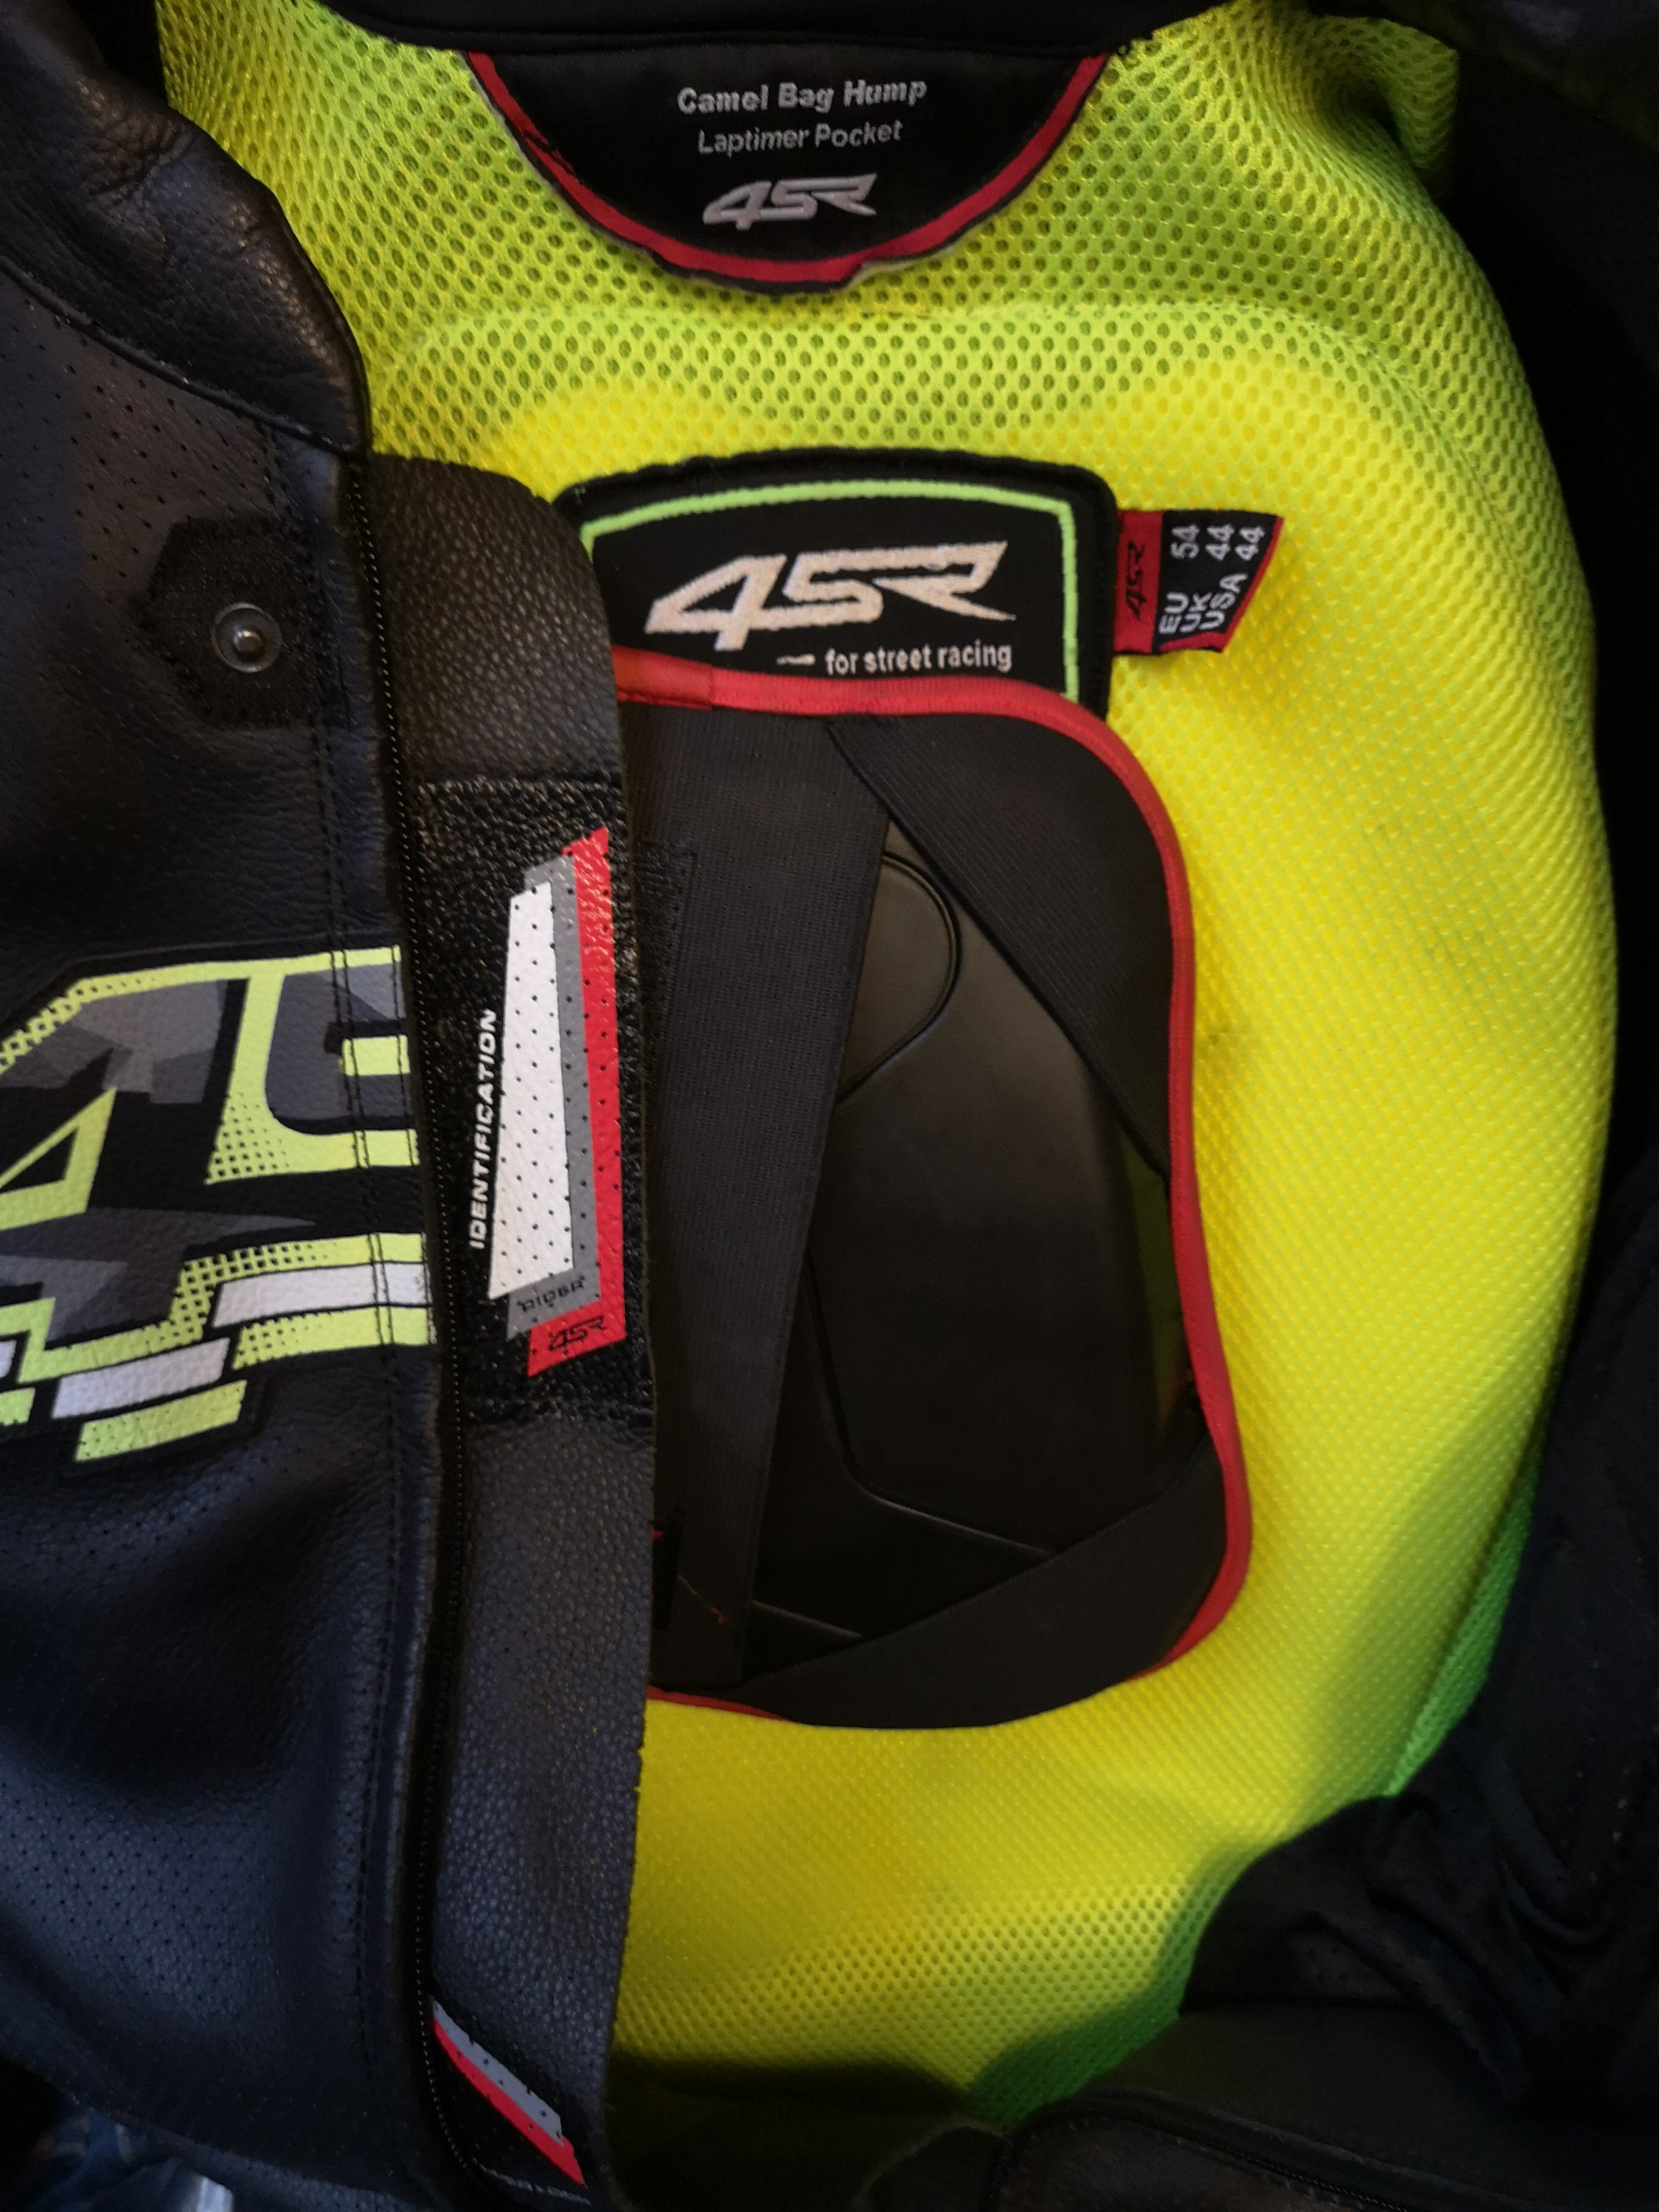 Are motorcycle leathers waterproof?